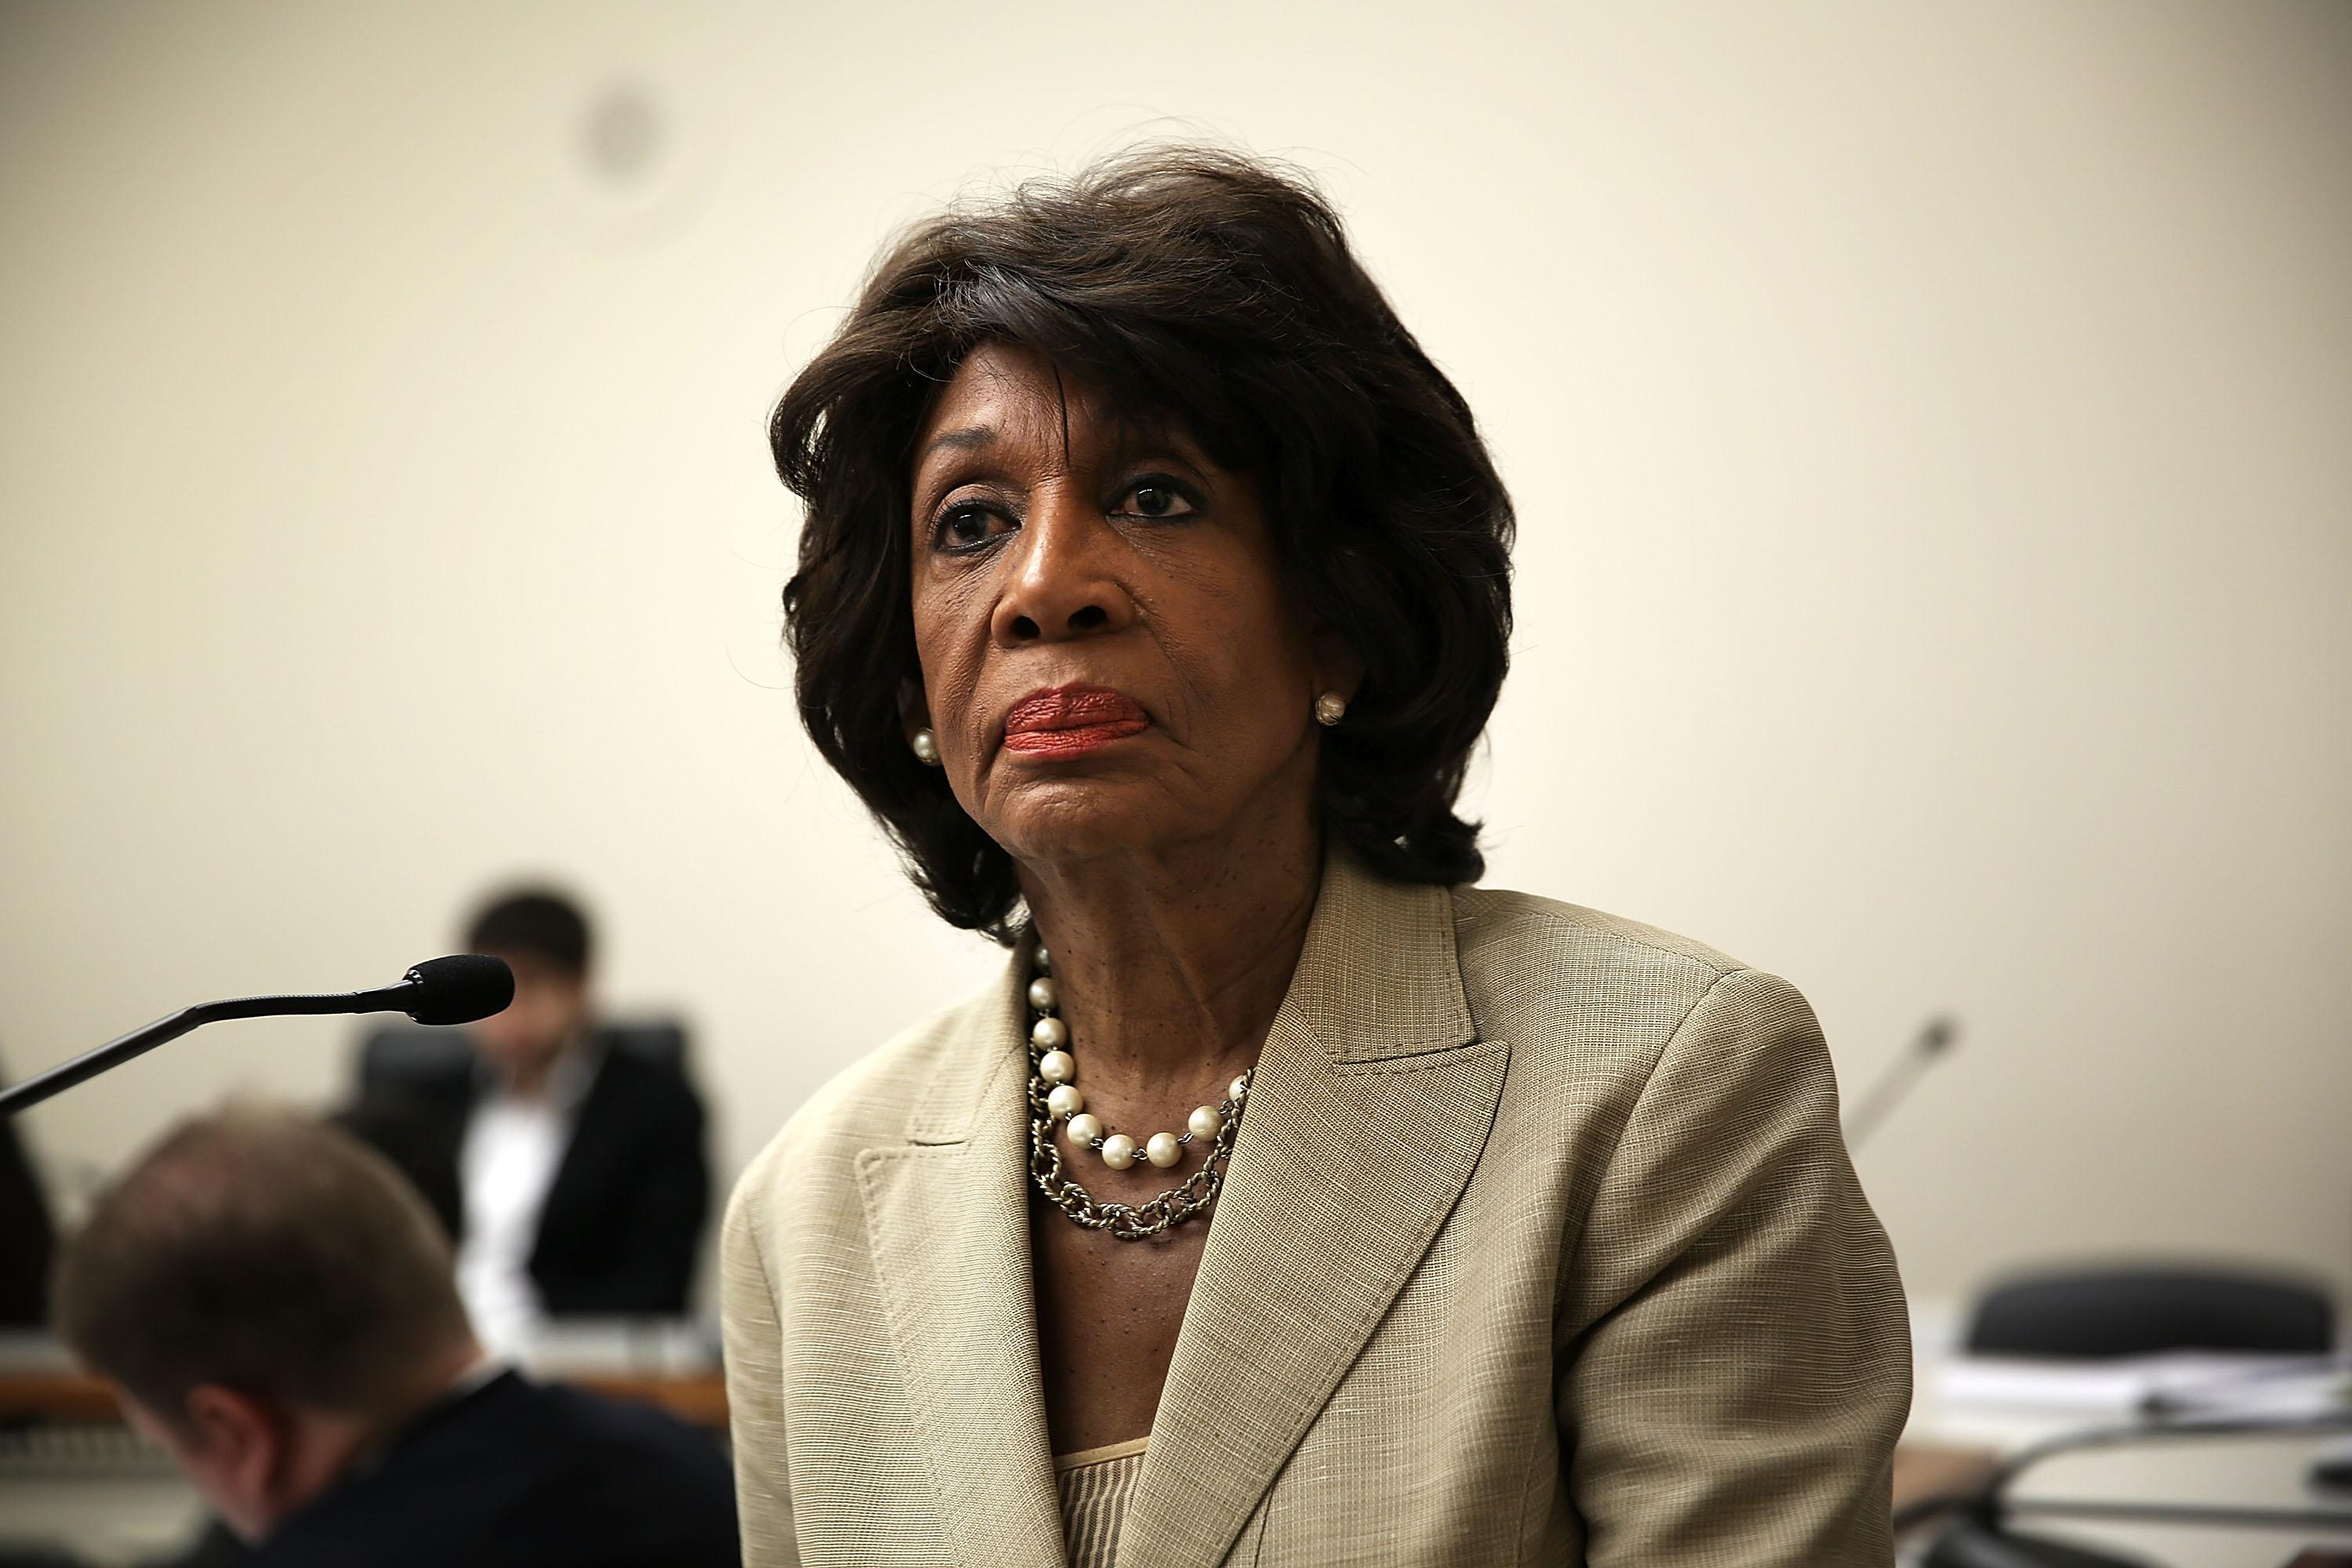 Maxine Waters Leads Discussion On Housing Finance Reform